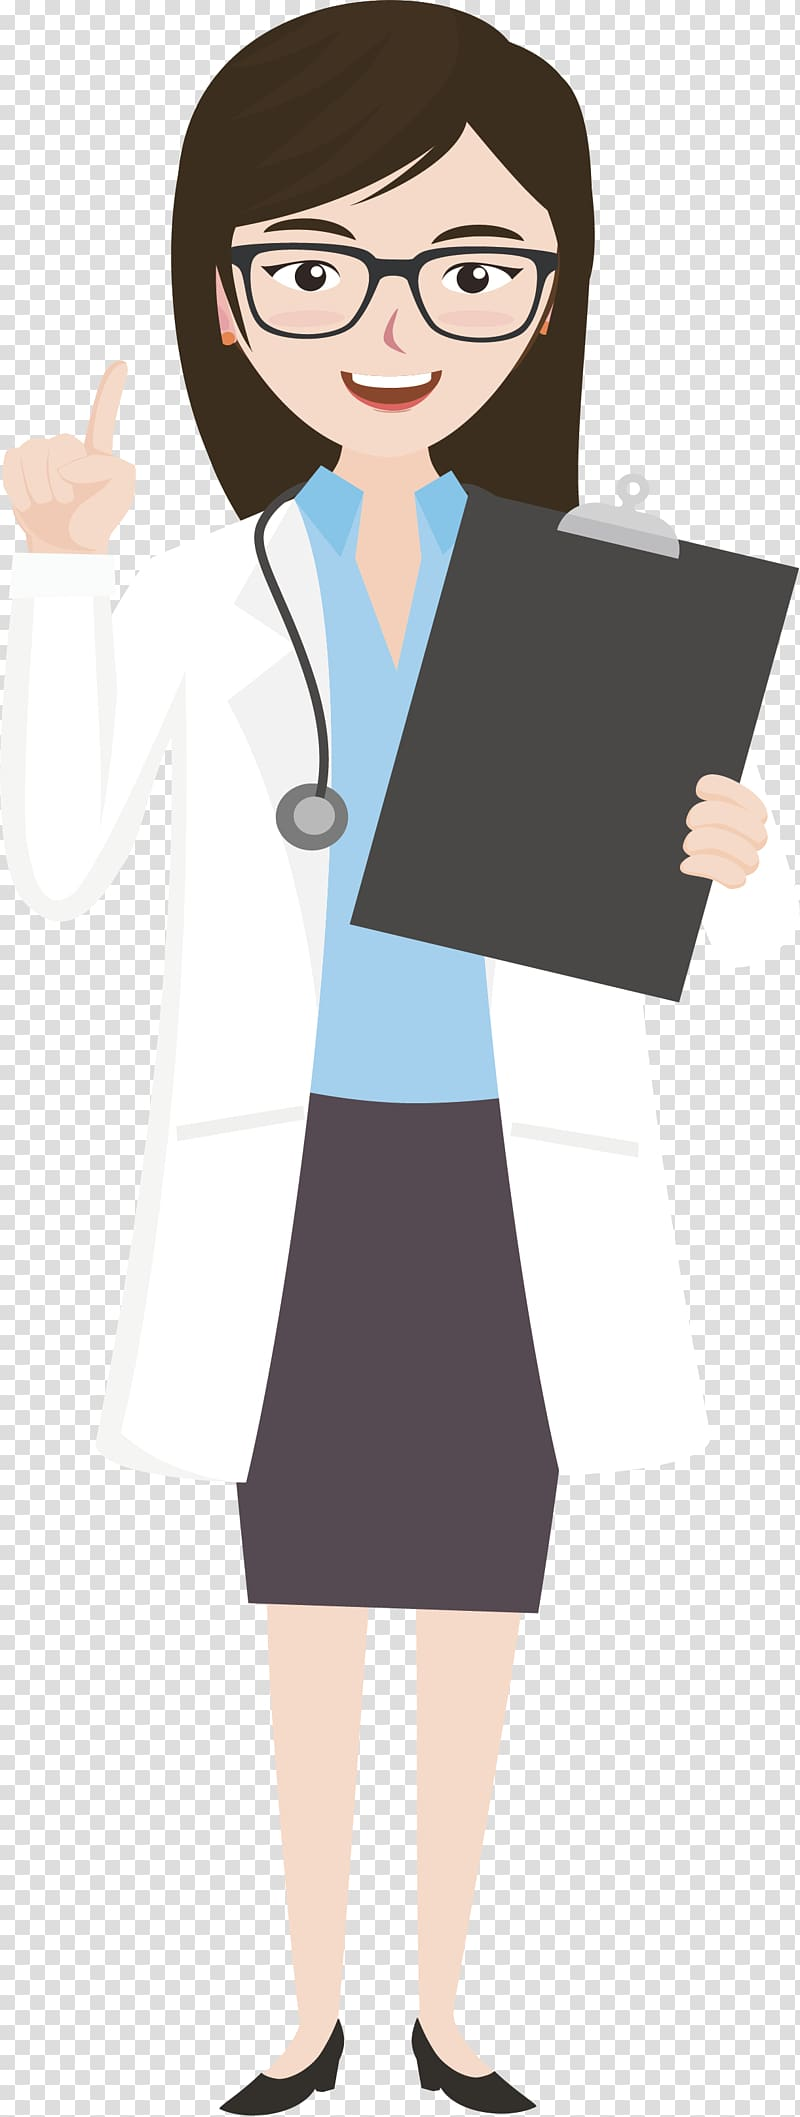 Wear glasses clipart clip Woman doctor illustration, Glasses Physician Woman, A woman ... clip